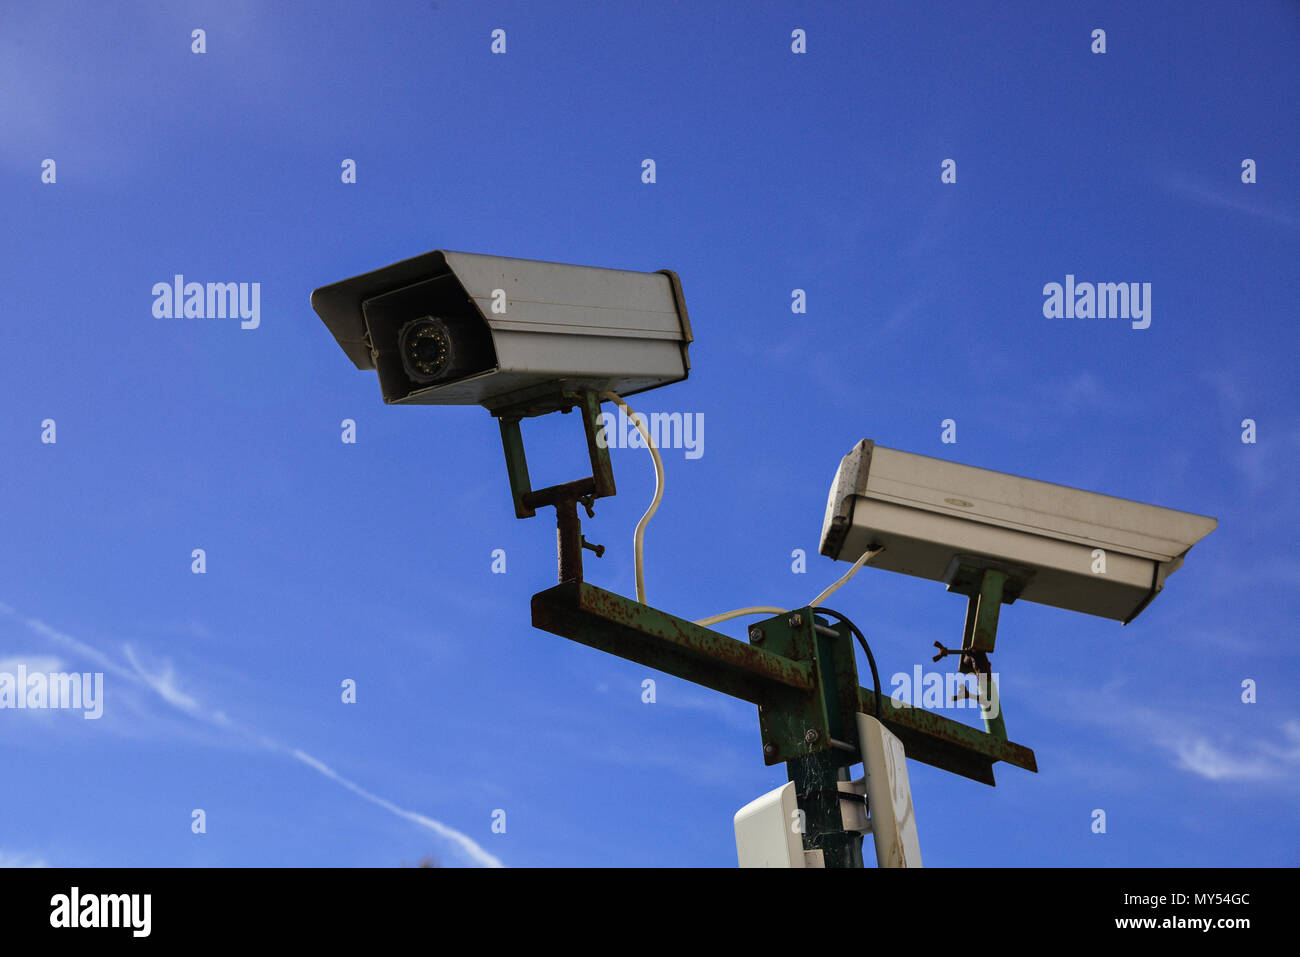 security camera and urban video - Stock Image